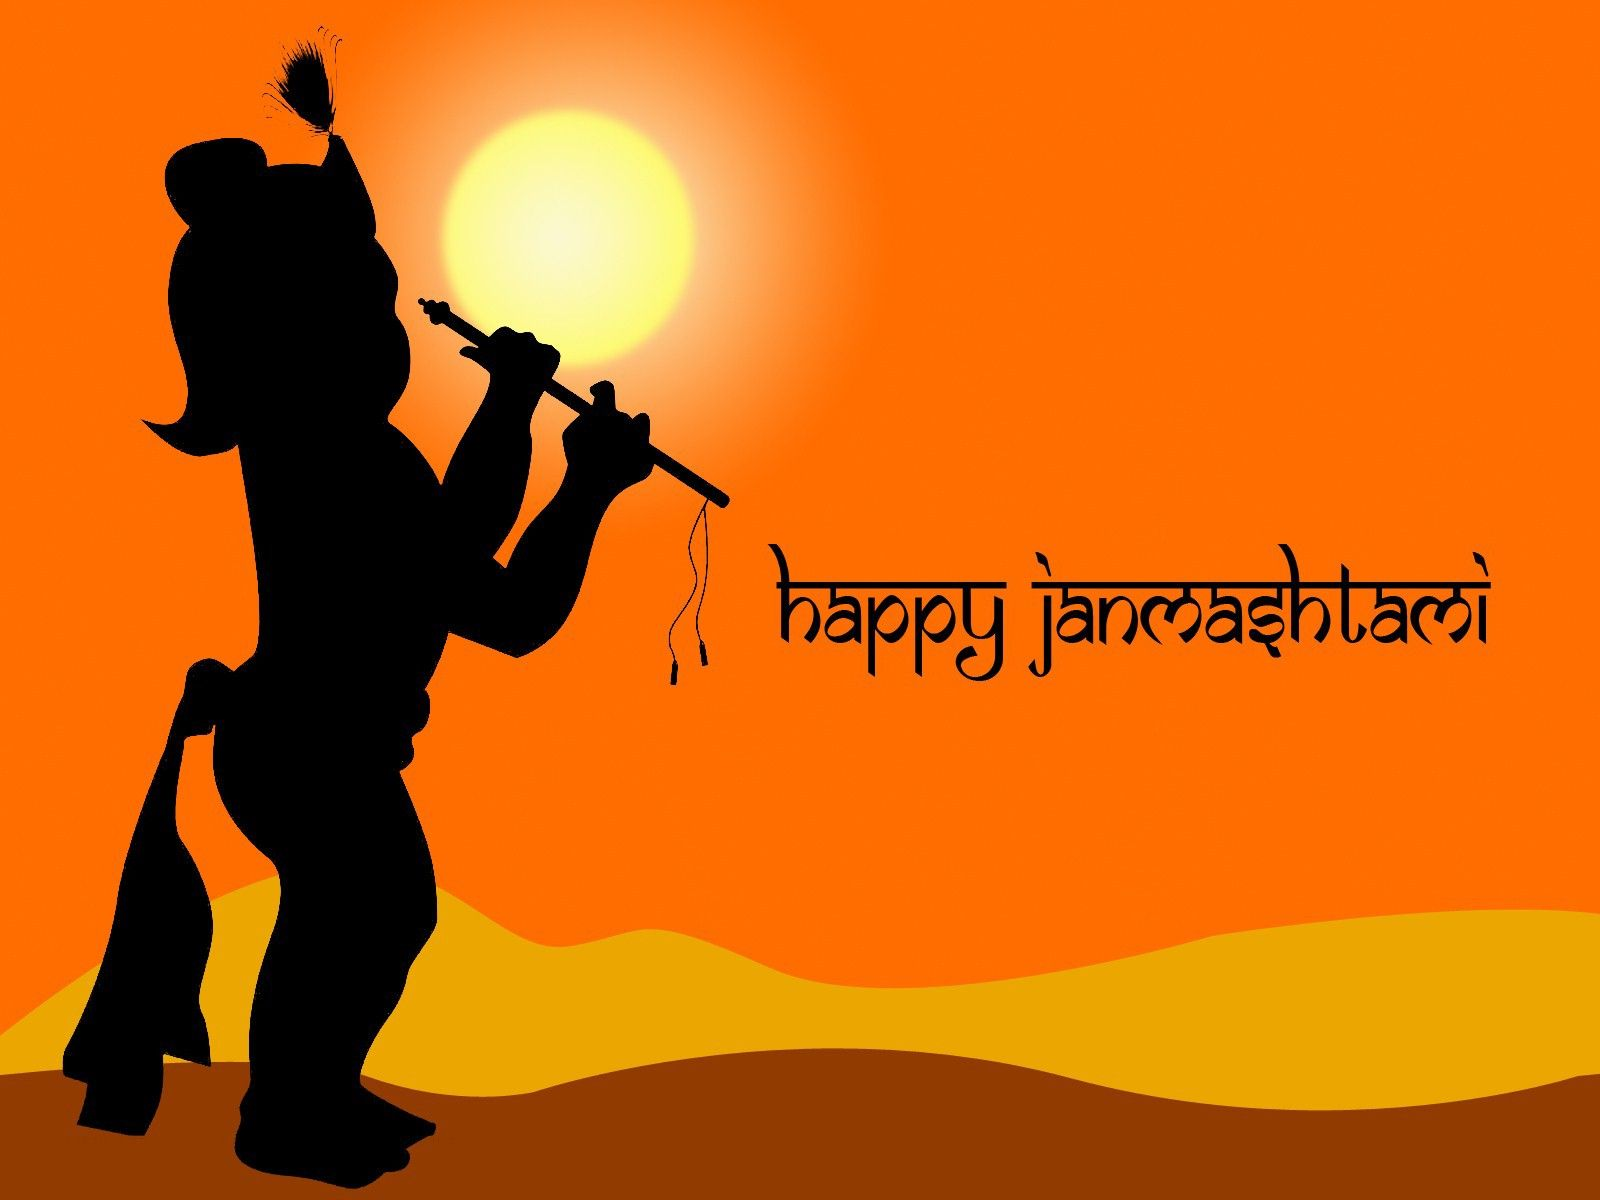 Free Download 100 Pure Janmashtami Hd Wallpapers Latest Photoshoots Beautiful Images And More F Happy Janmashtami Image Janmashtami Images Happy Janmashtami